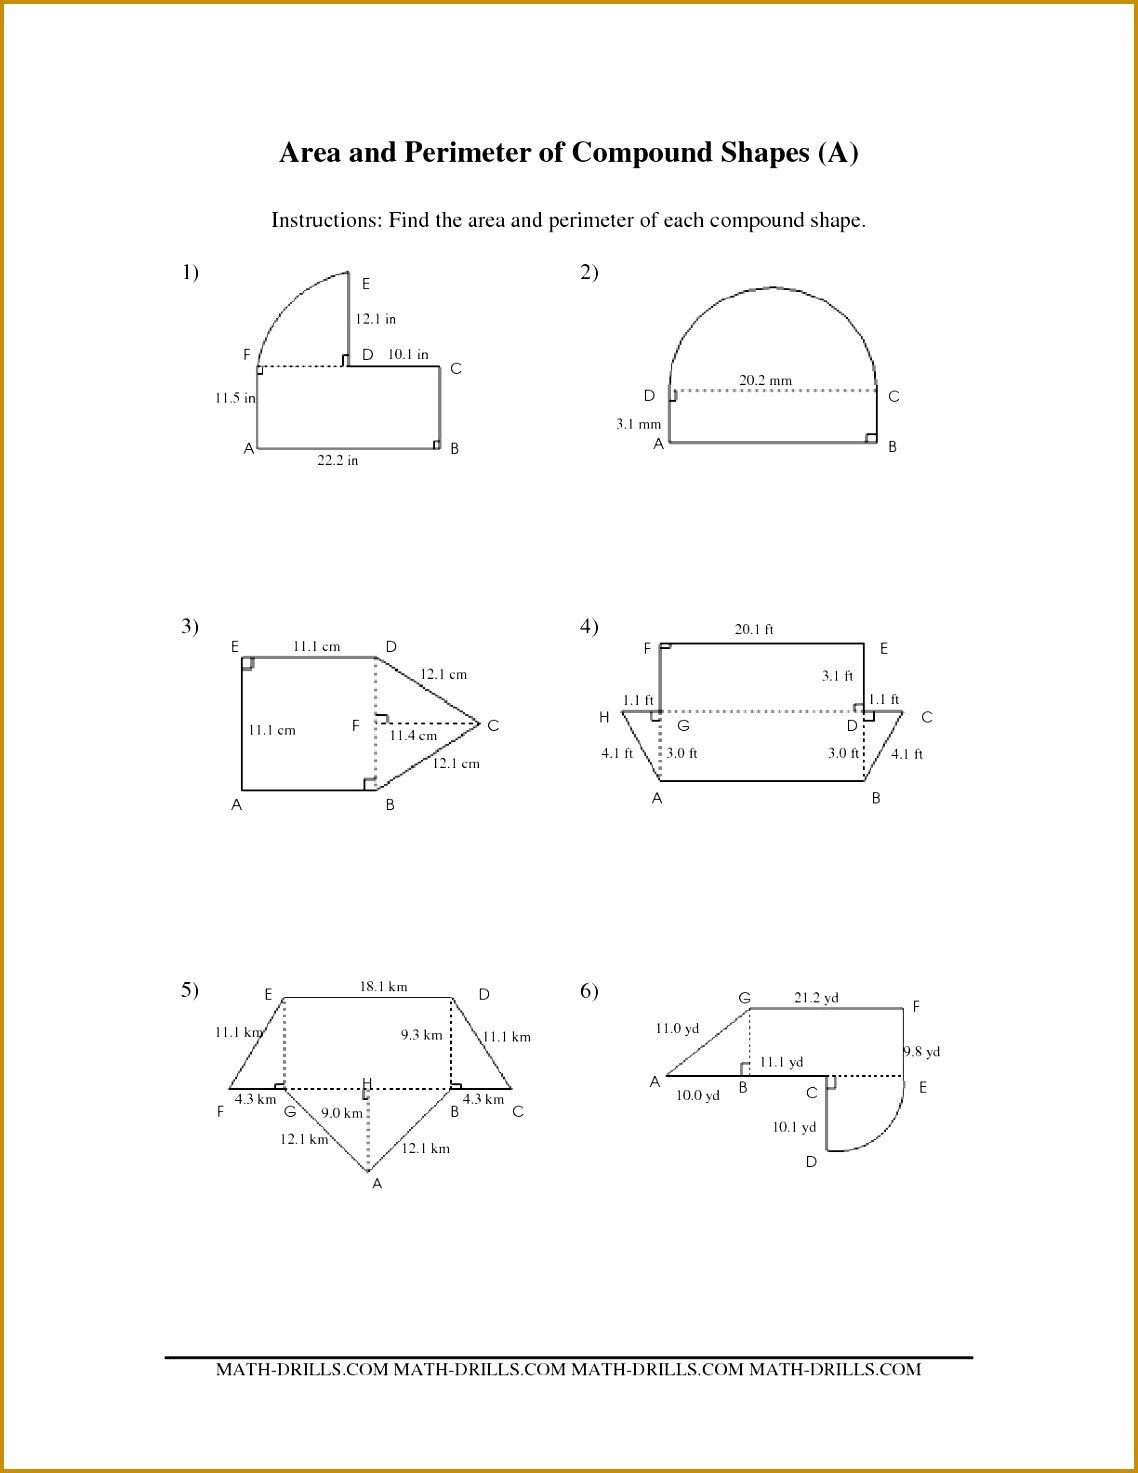 area of pound shapes worksheet maths worksheets area and perimeter criabooks criabooks area of pound shapes worksheet